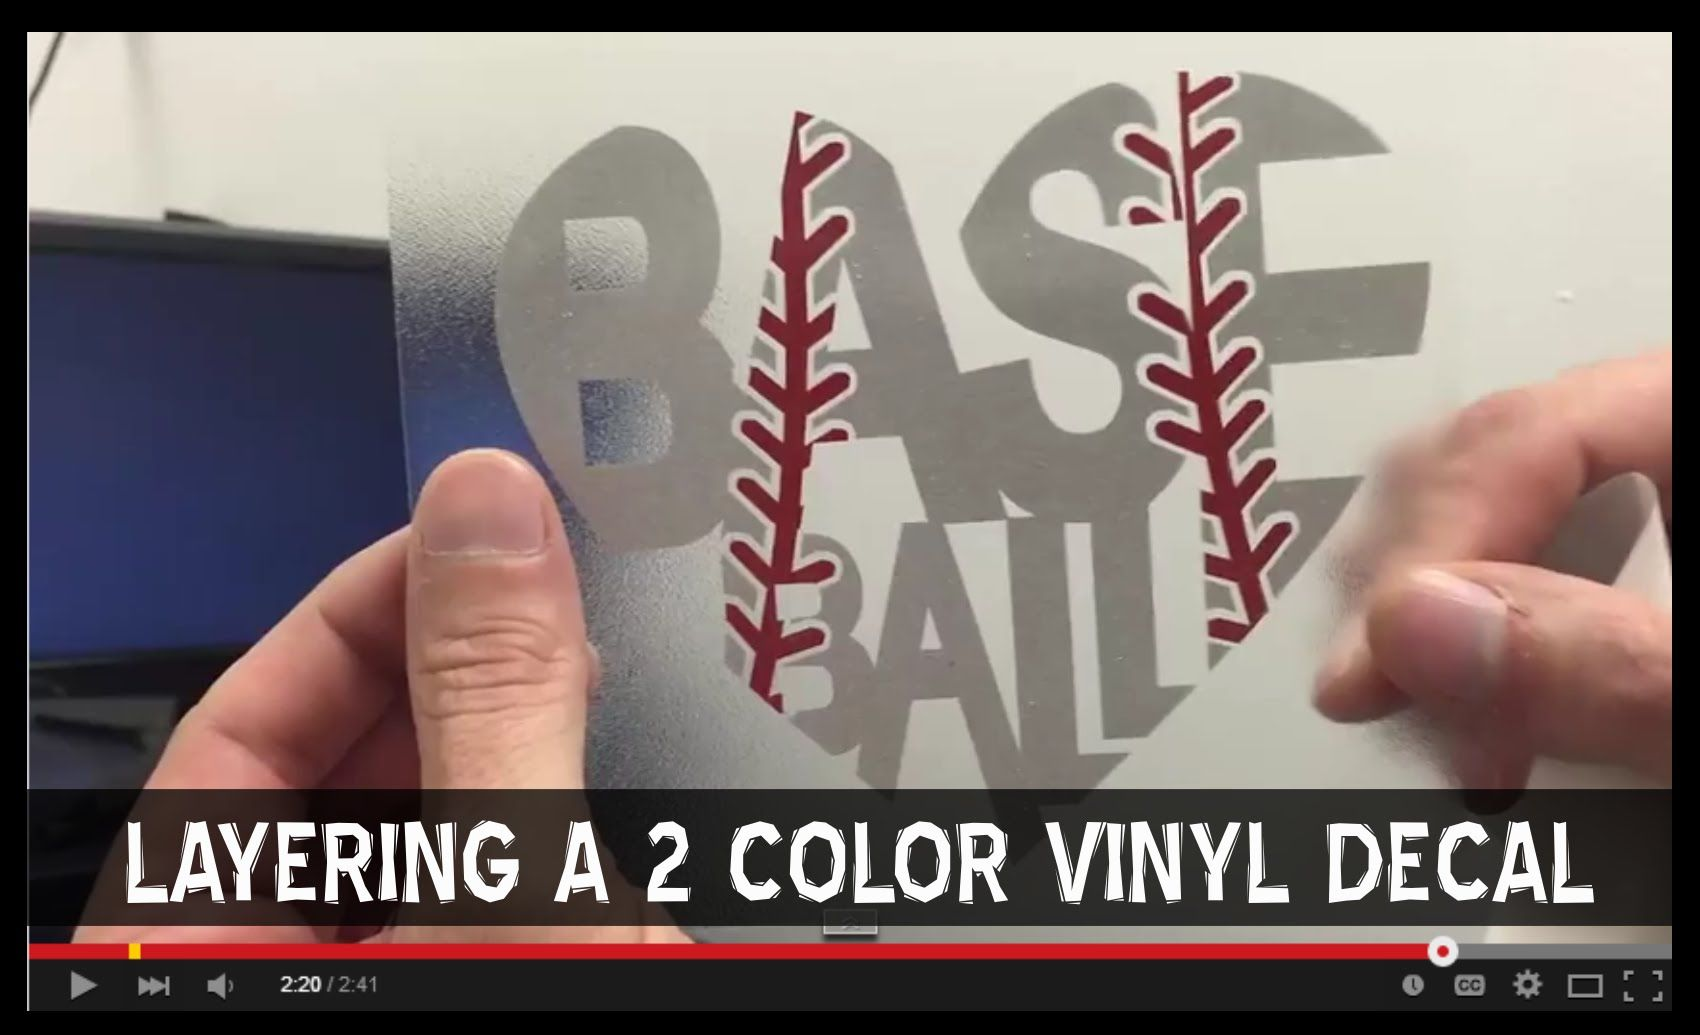 Best Images About DECALS Stickers On Pinterest Vinyls Cars - How to make your own vinyl decals for cars